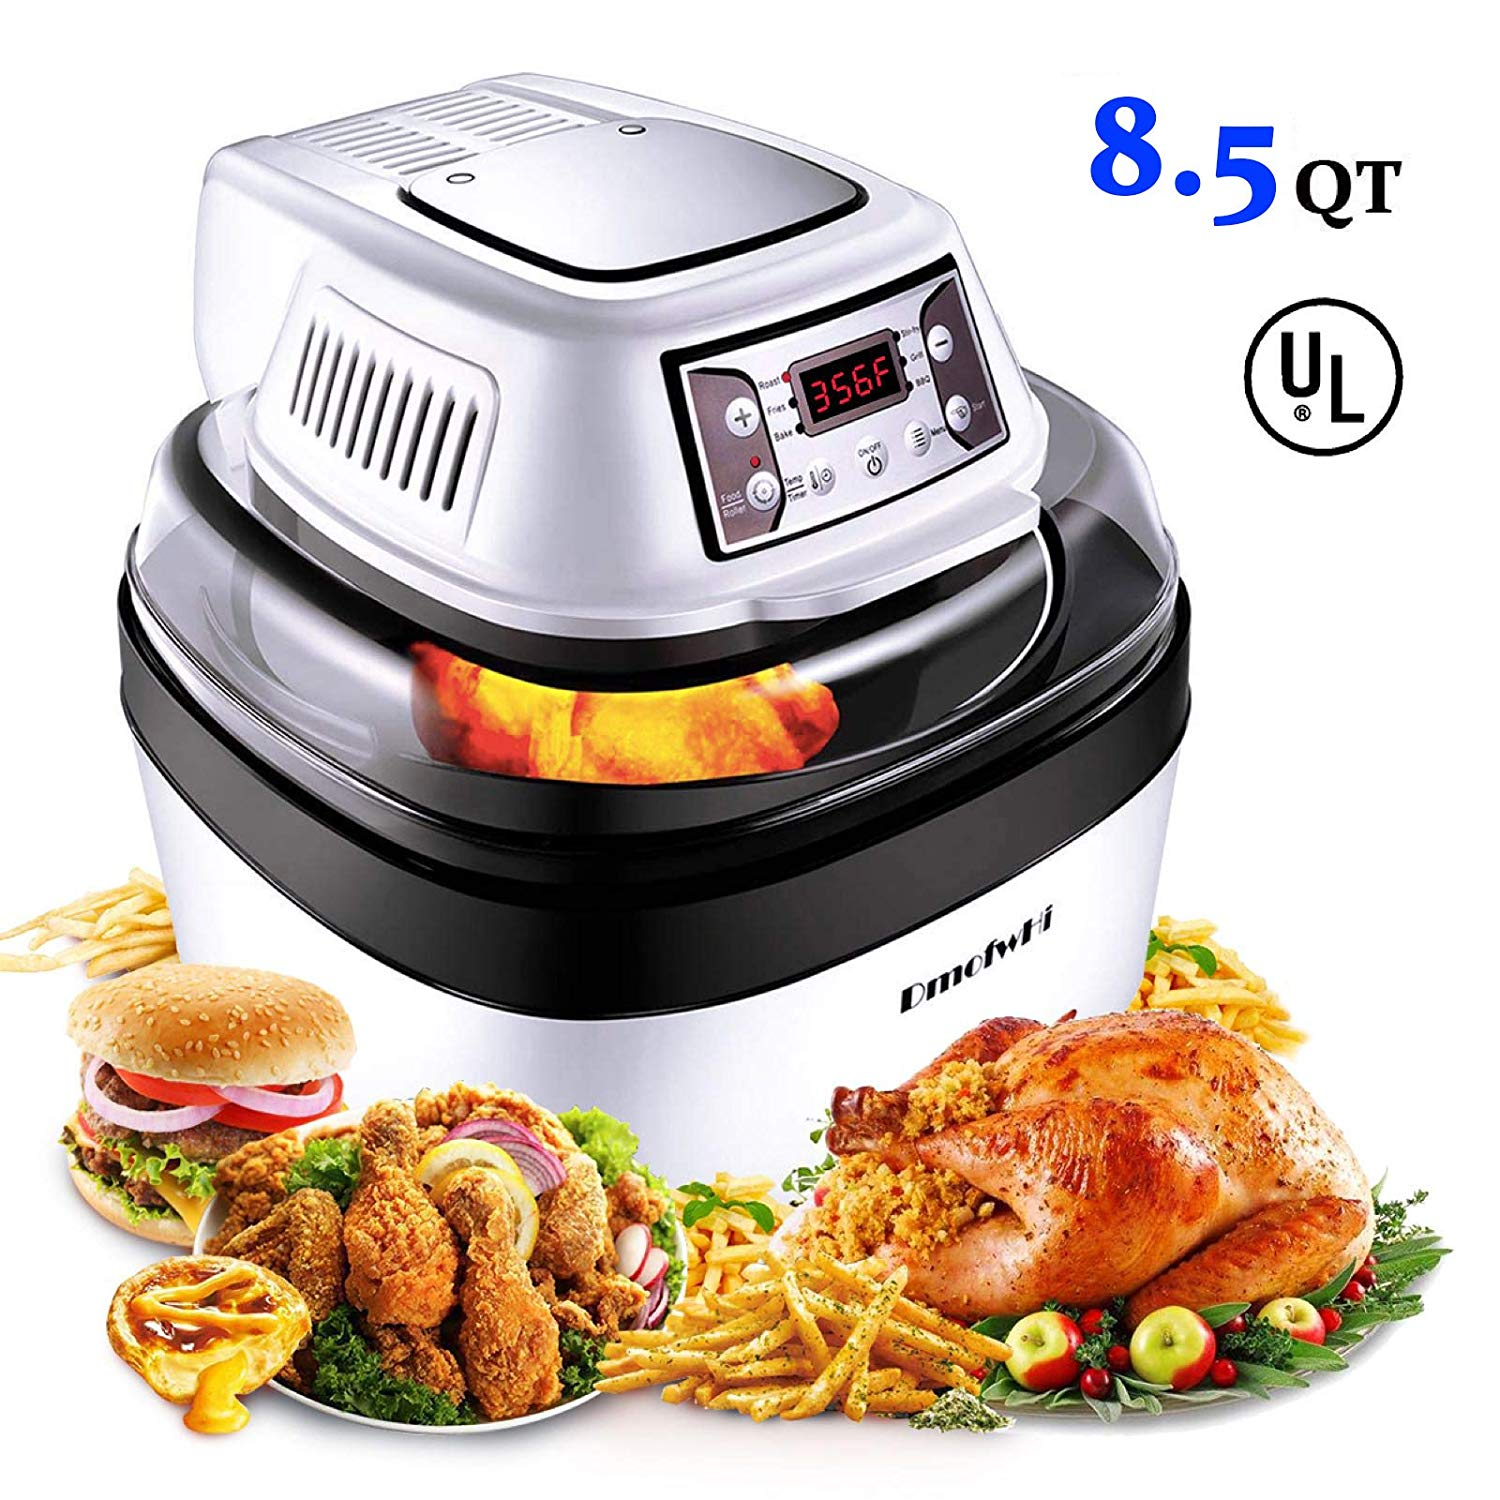 DmofwHi Large Air Fryer Toaster Oven XL